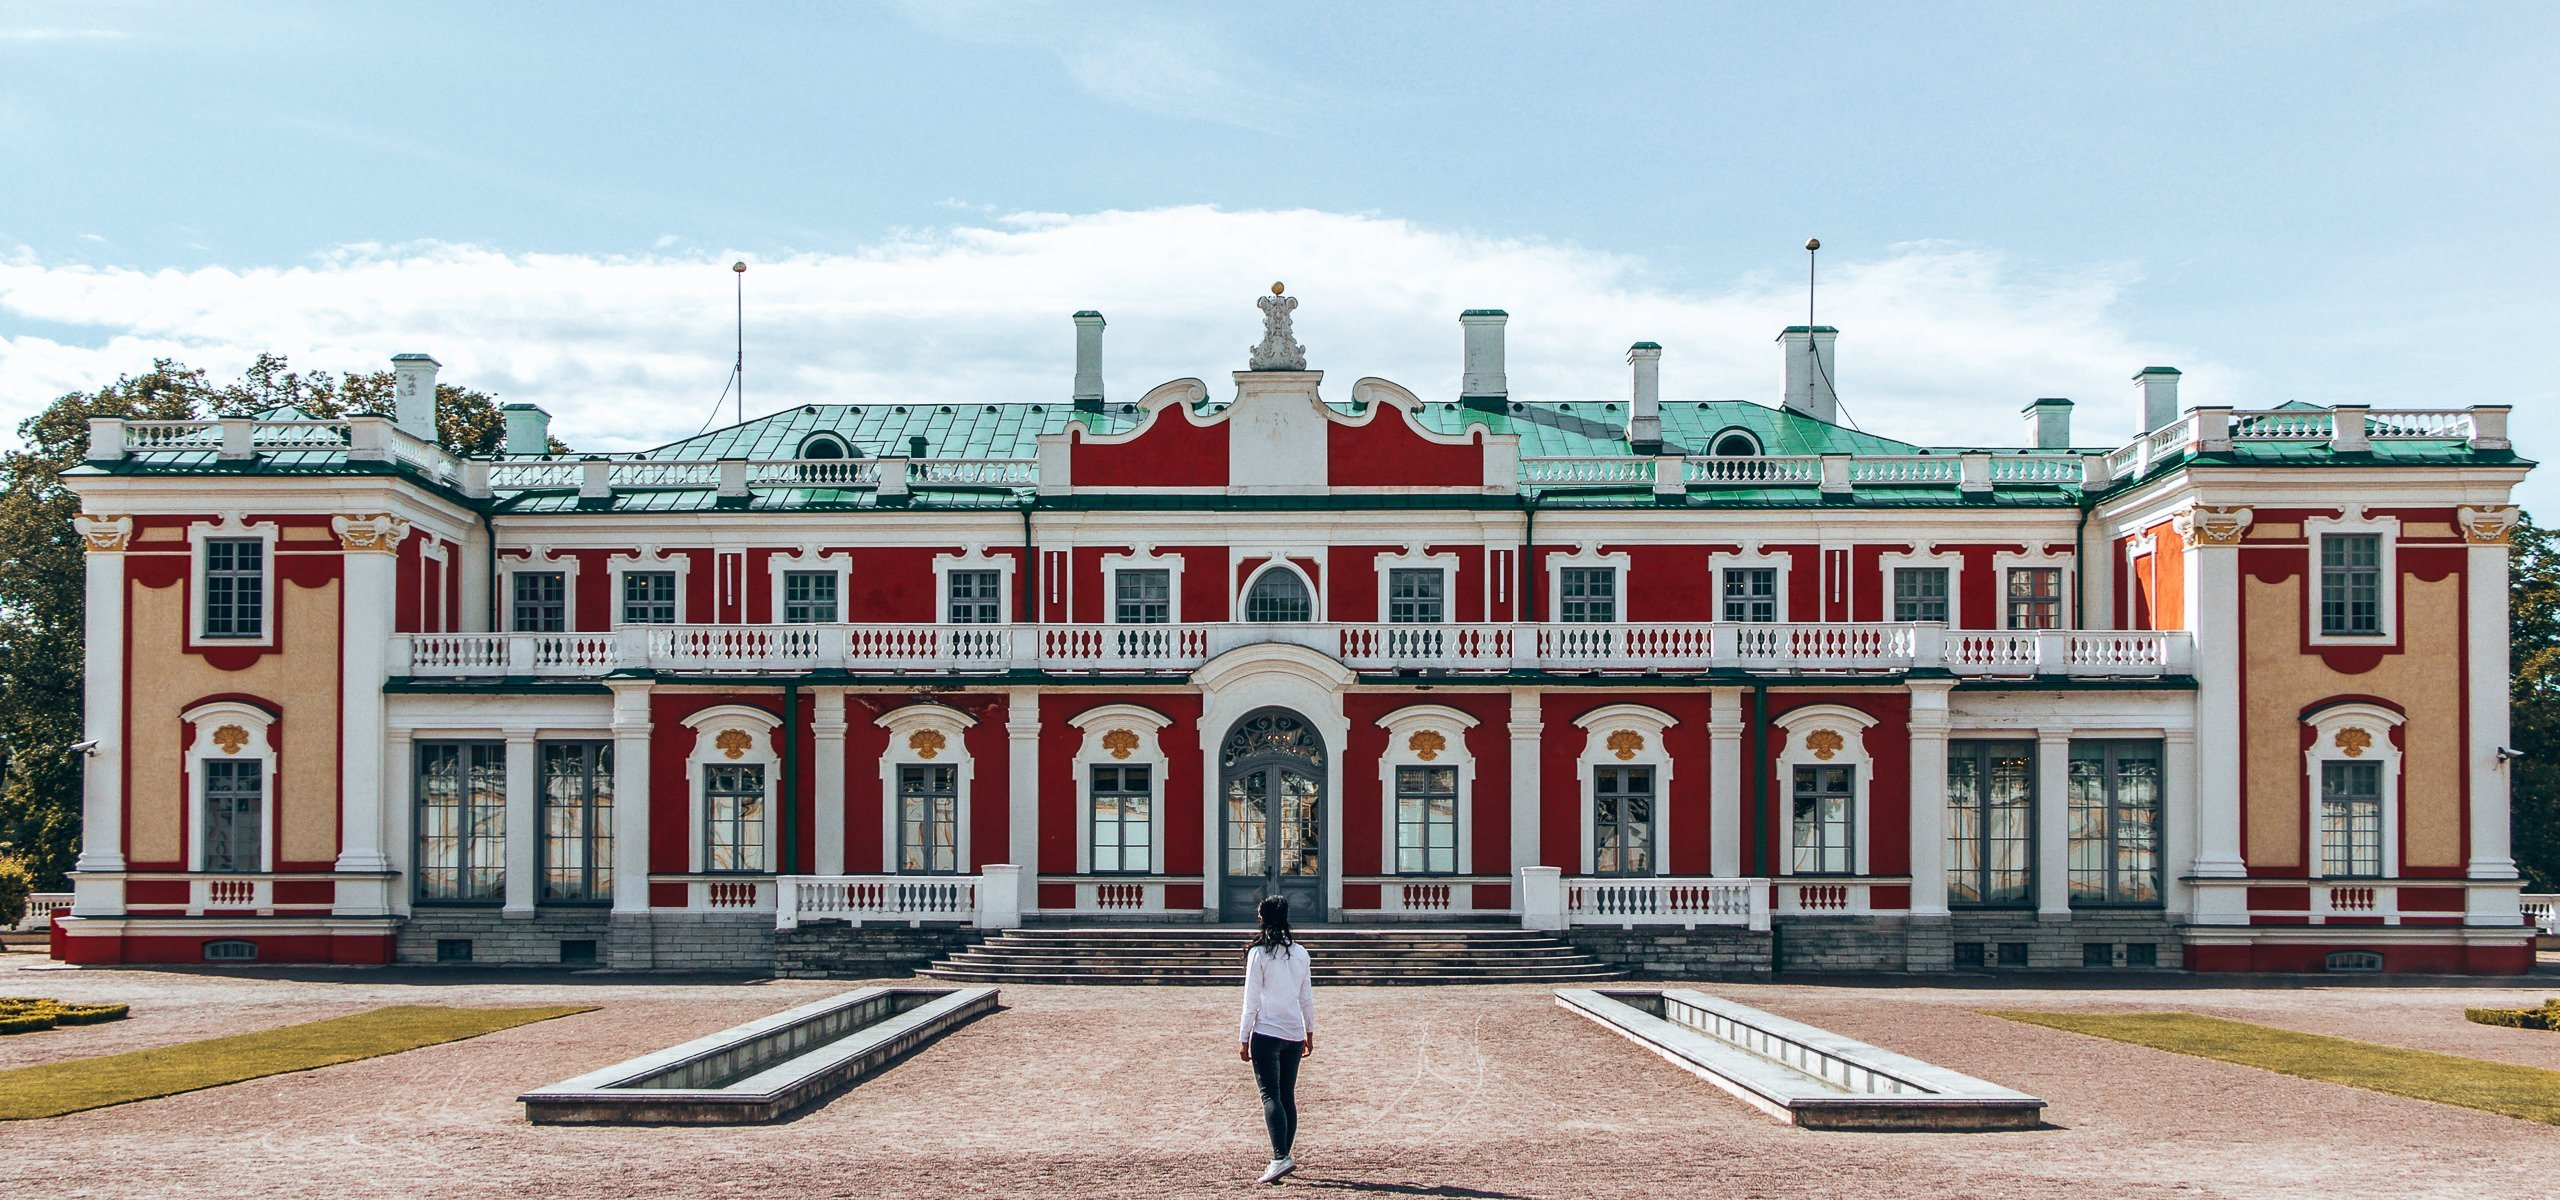 A girl stands before Kadriorg Palace in Tallinn, Estonia